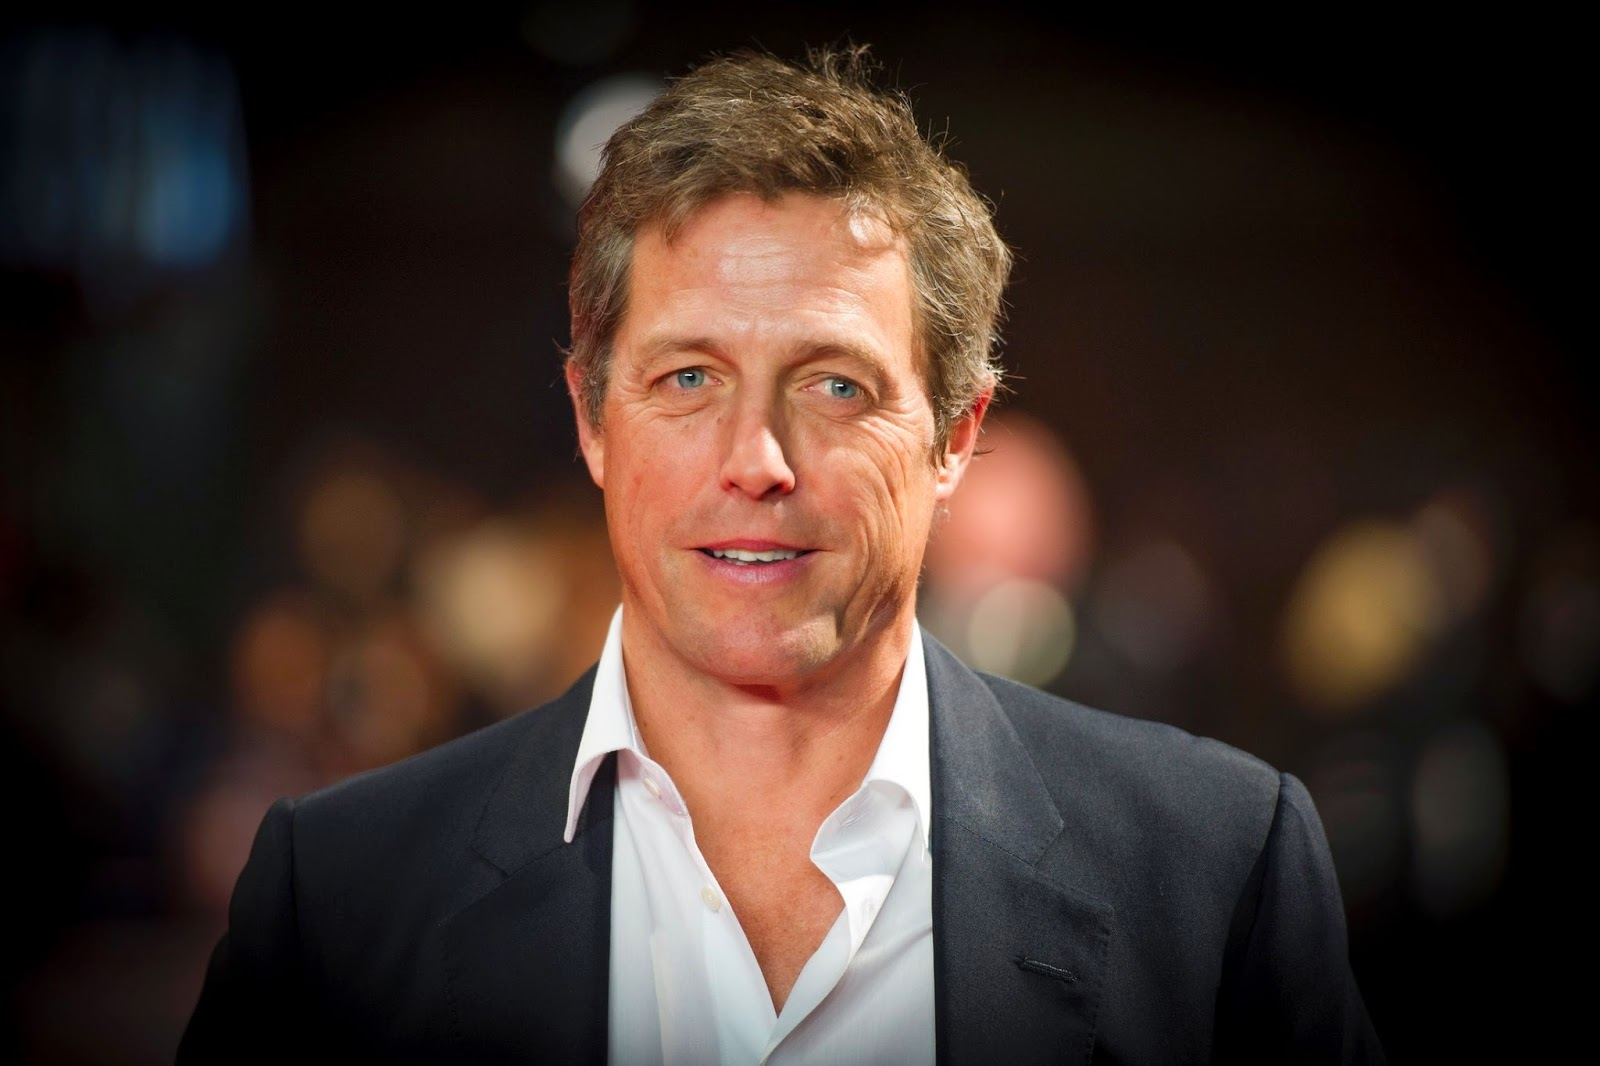 Hugh Grant: Rom-Com King Hugh Grant Returns To The Screen In 'The